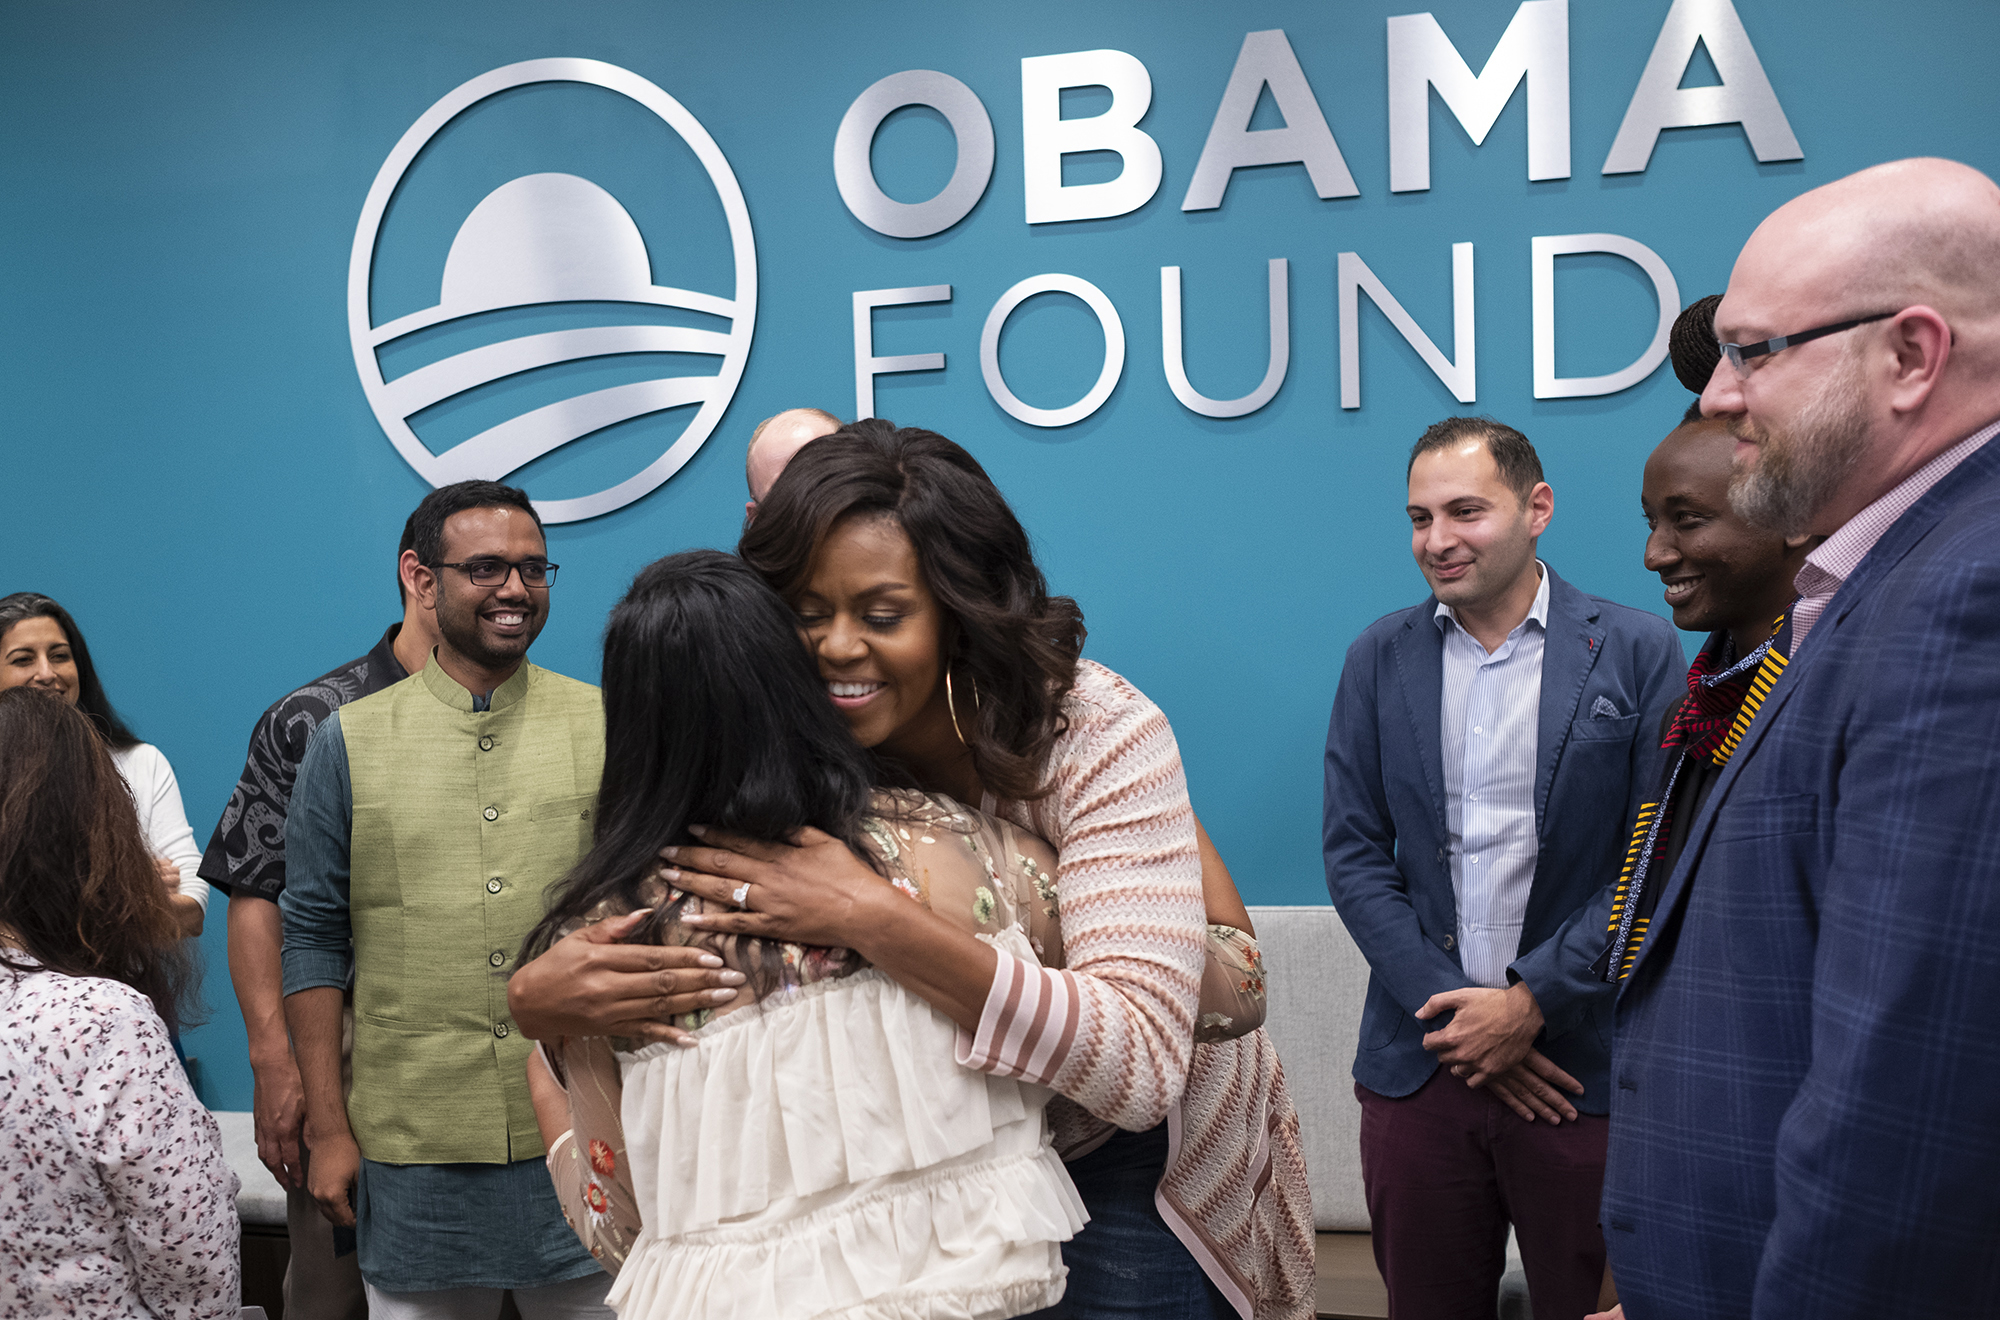 Mrs. Obama hugs a young woman as a group of people look on.